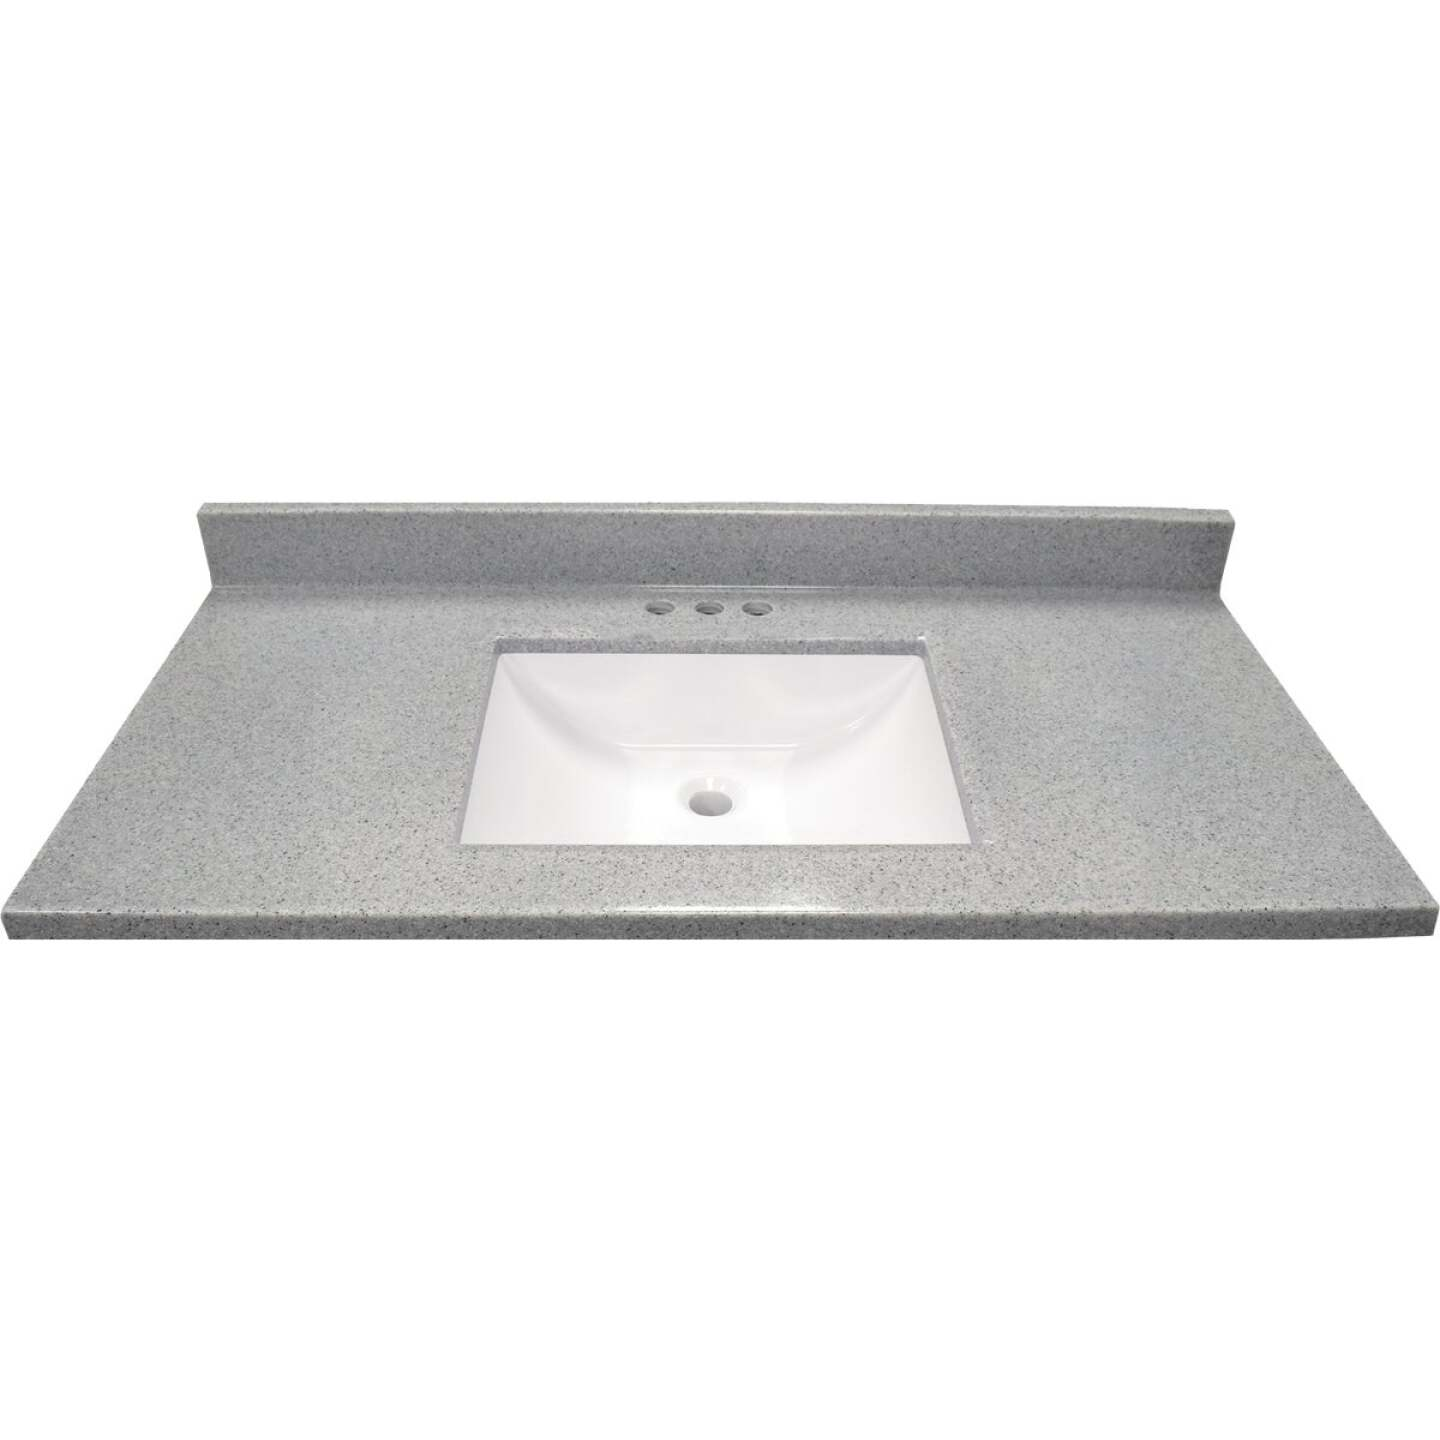 Modular Vanity Tops 37 In. W x 22 In. D Pewter Cultured Marble Vanity Top with Rectangular Wave Bowl Image 2